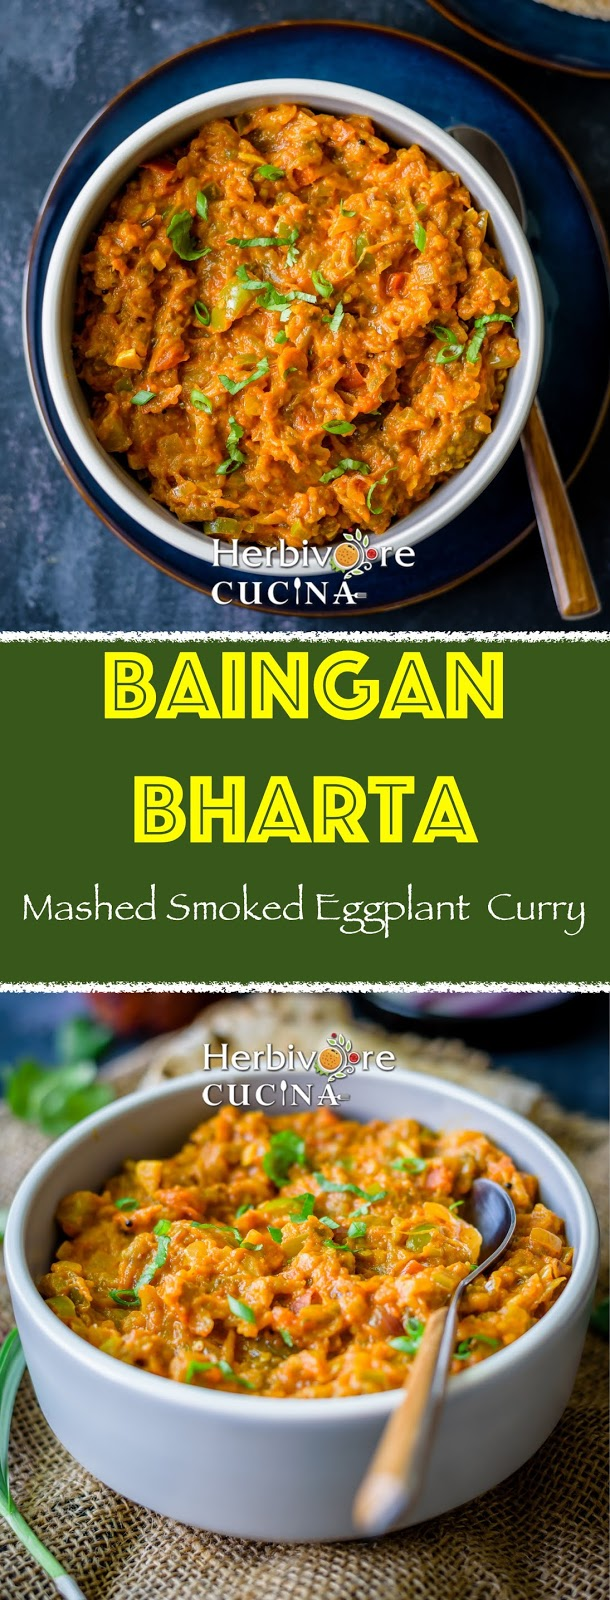 Herbivore Cucina Baingan Bharta  Mashed Smoked Eggplant CurryAn Indian curry made from fire roasted eggplant tomatoes onions and Indian spices This curry is delicious and...